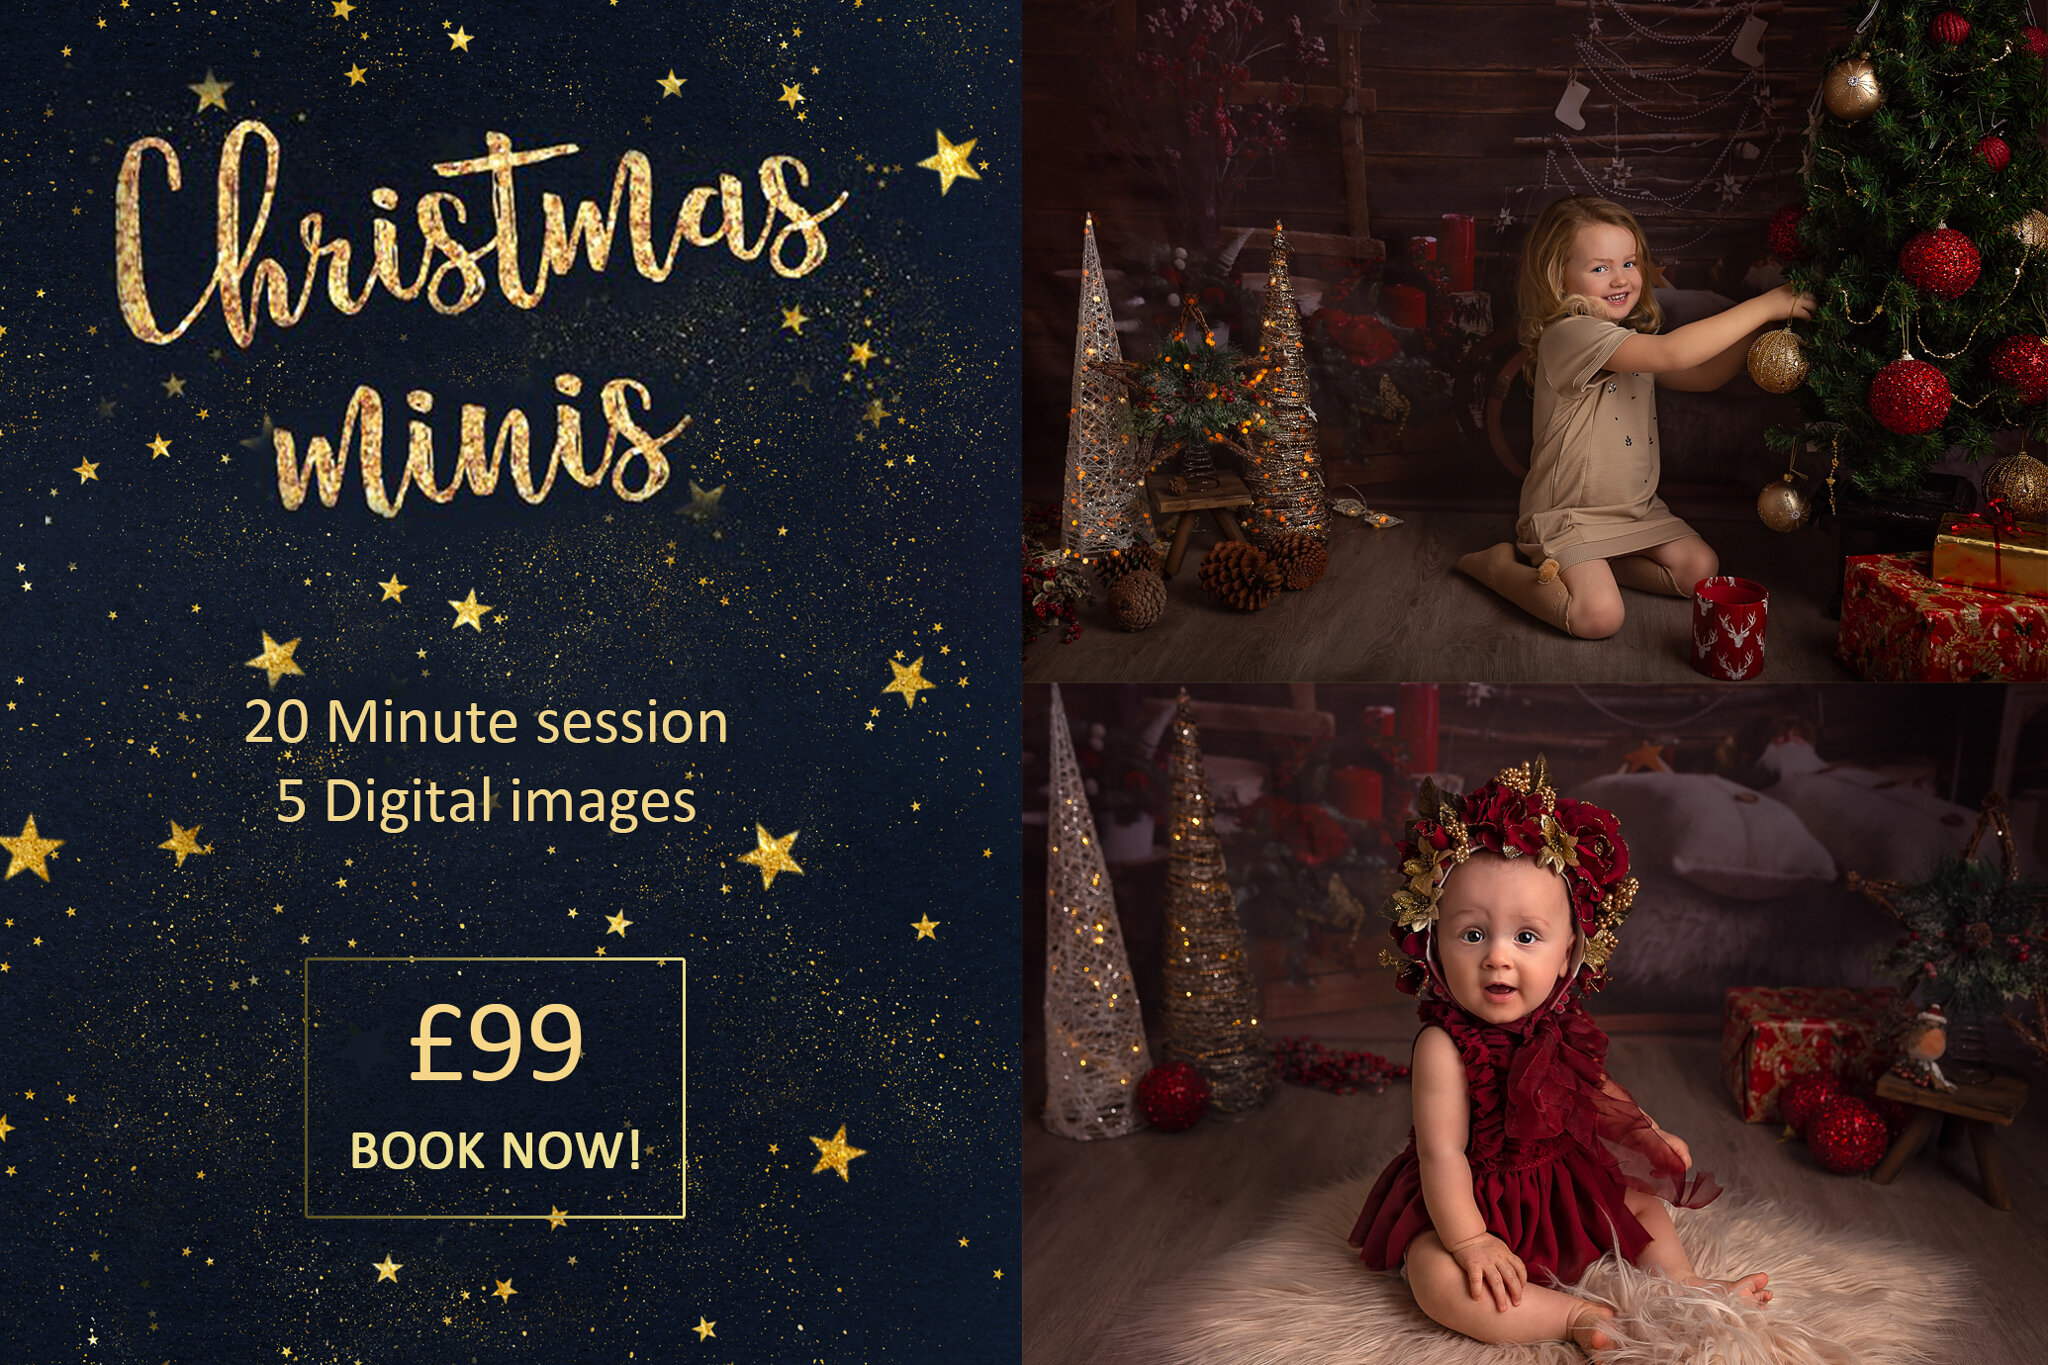 Leeds Christmas Mini Sessions 2019